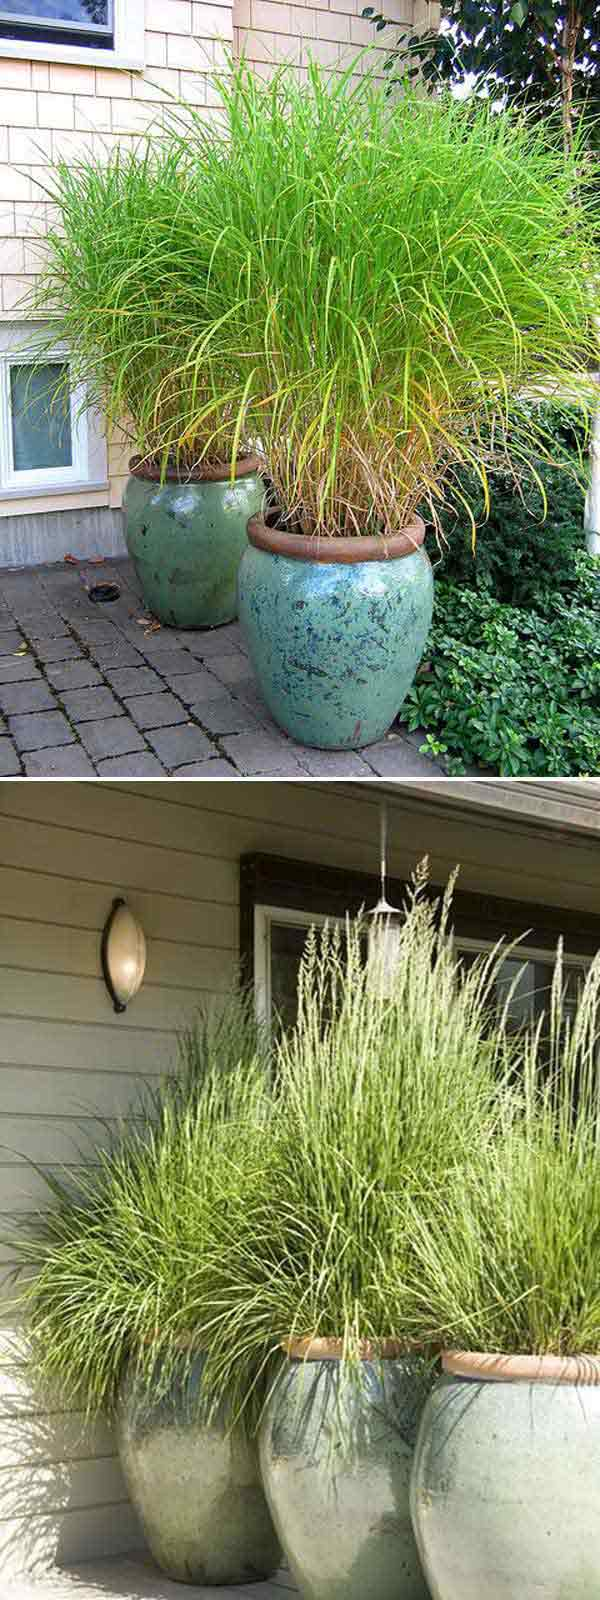 add privacy to your garden or yard with plants amazing diy